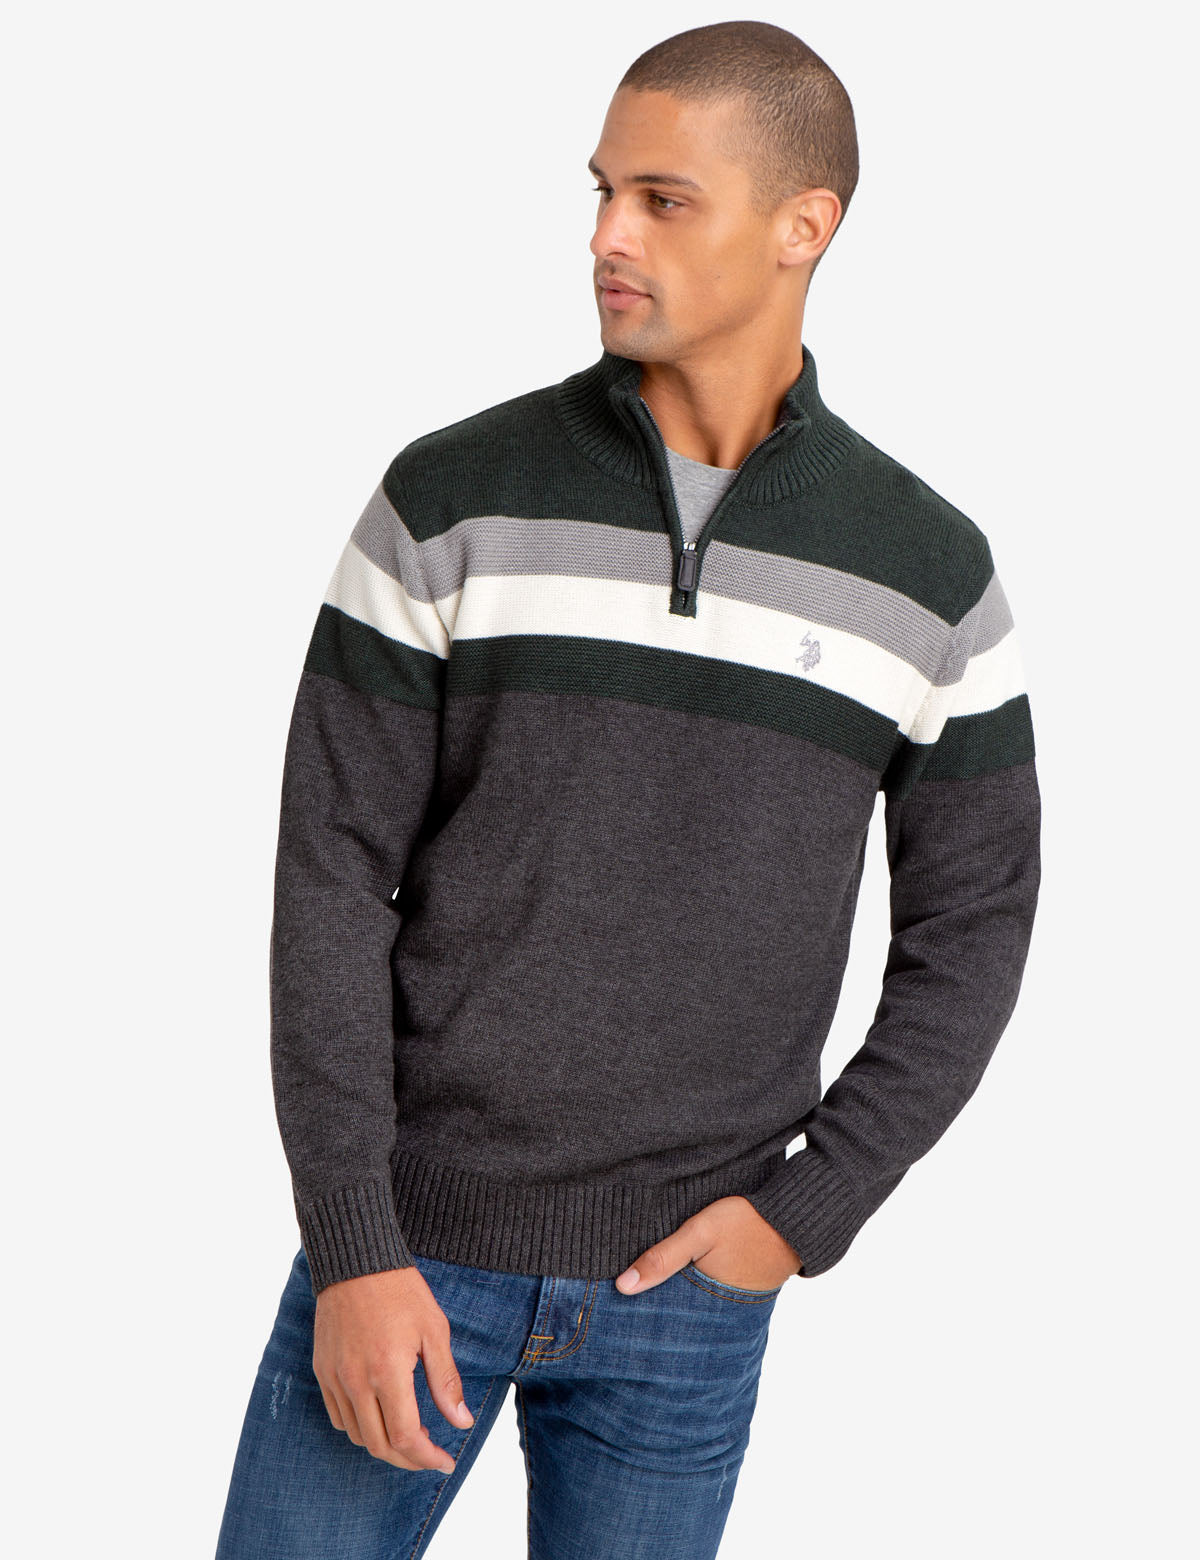 1/4 ZIP STRIPED SWEATER - U.S. Polo Assn.